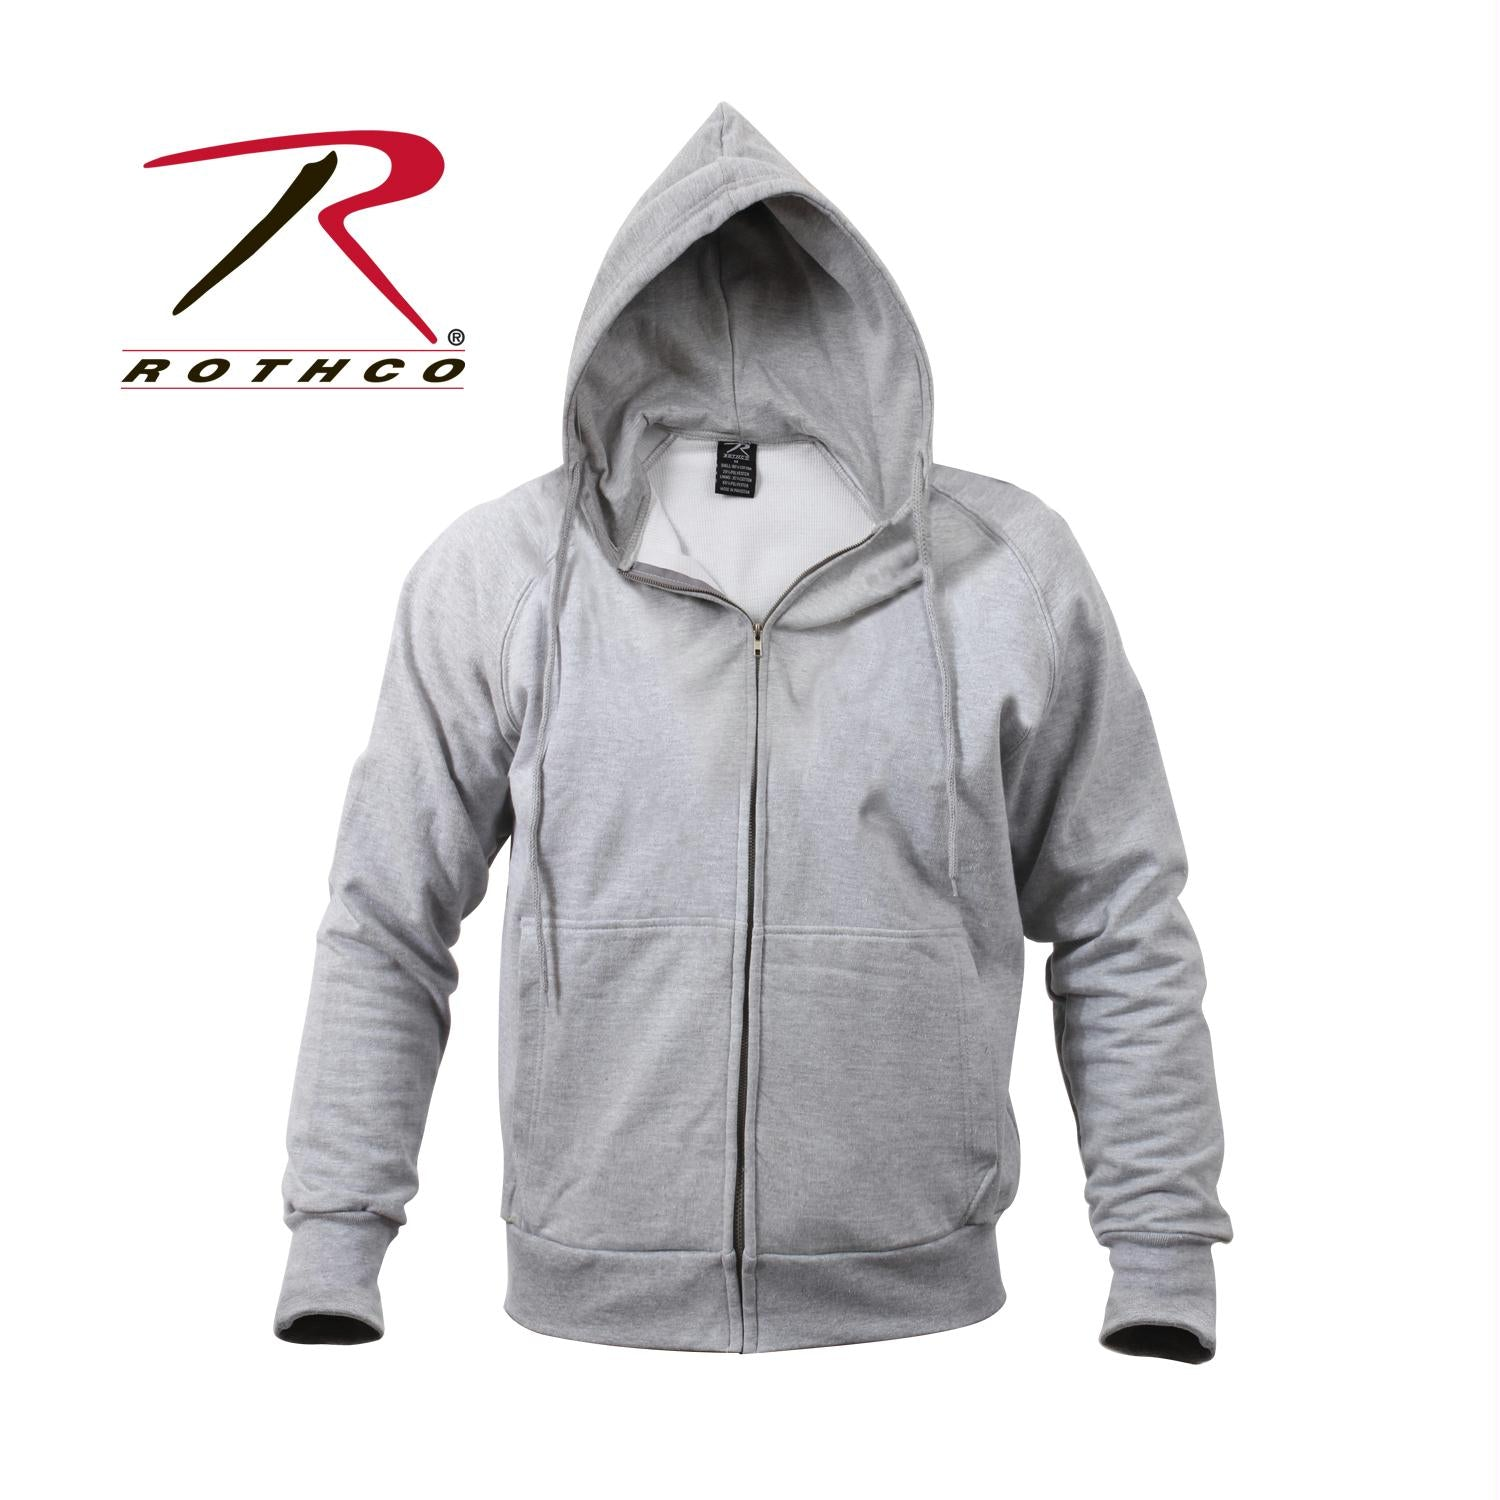 Rothco Thermal Lined Hooded Sweatshirt - Grey / 2XL